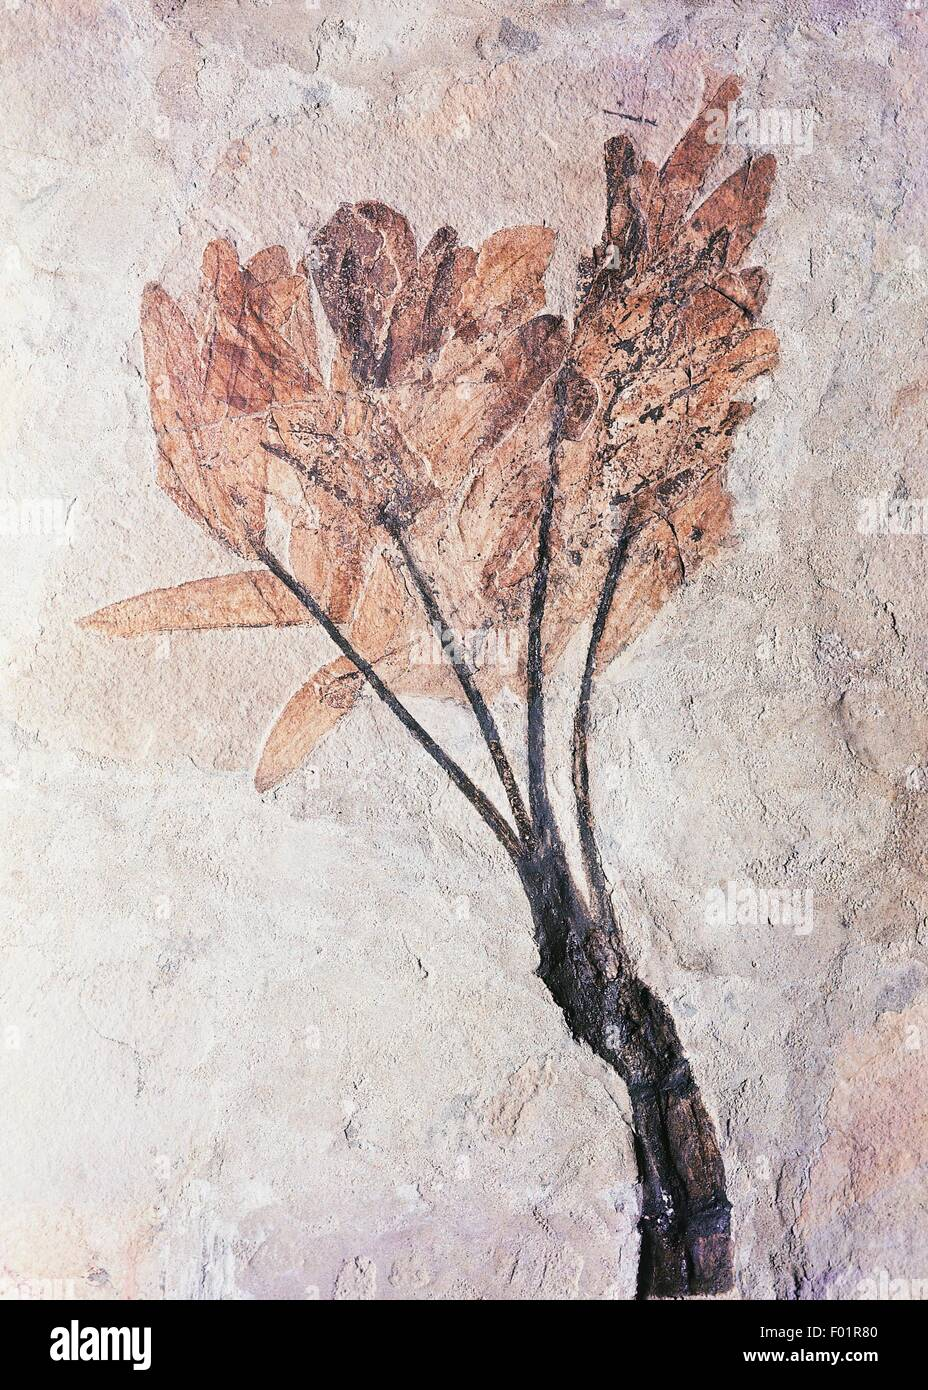 Fossilised plant from Middle Eocene Age. - Stock Image